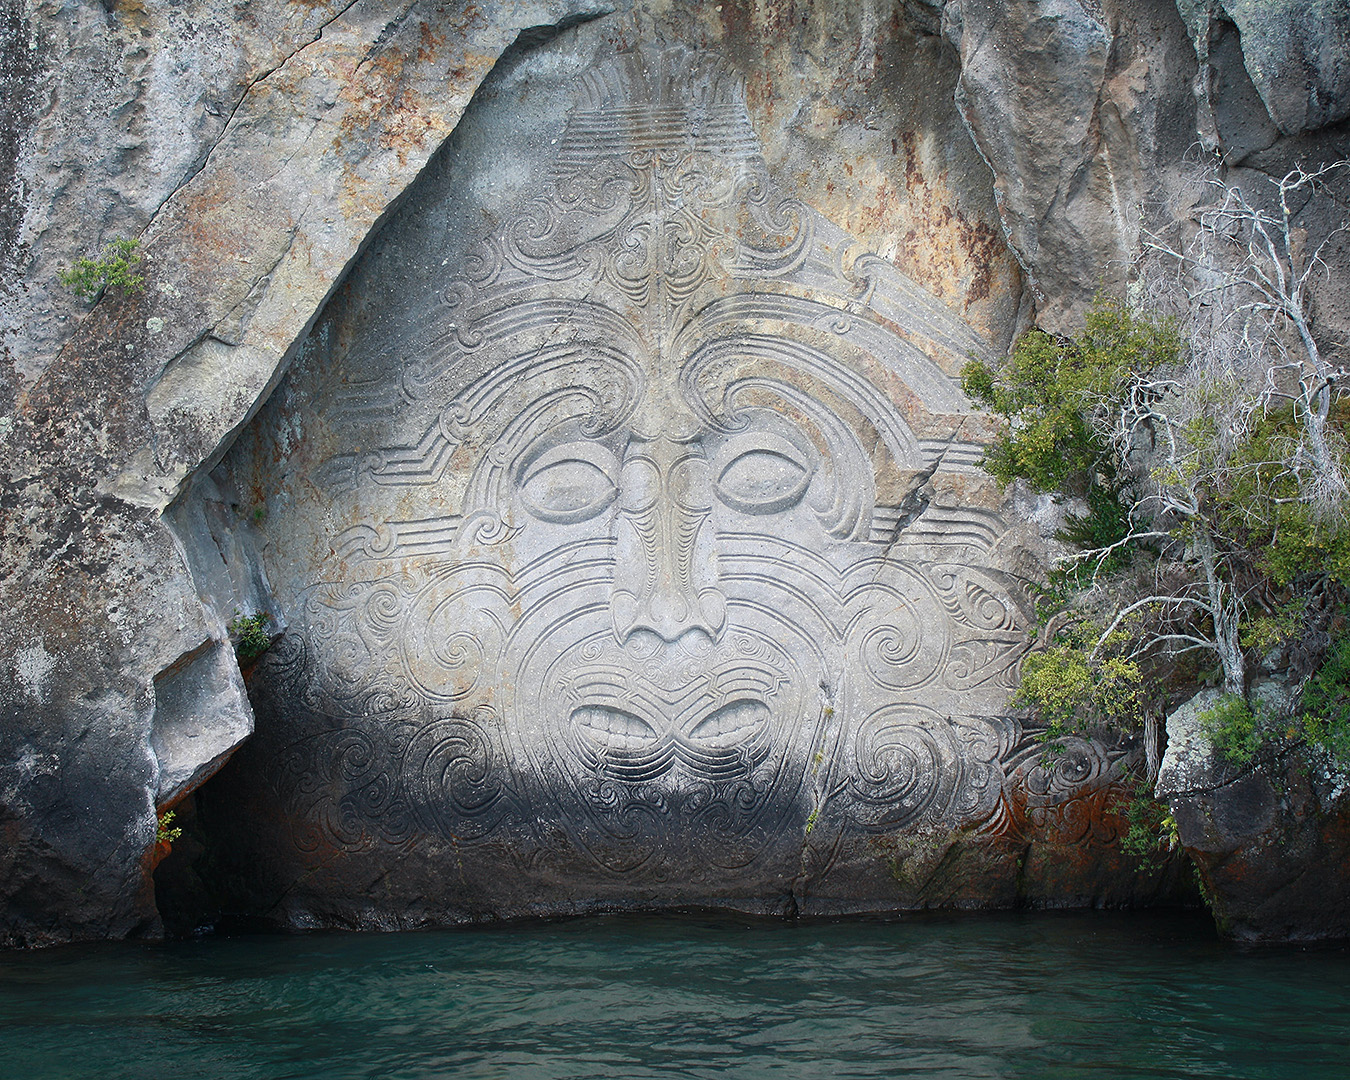 The famous rock carving at Lake Taupo.